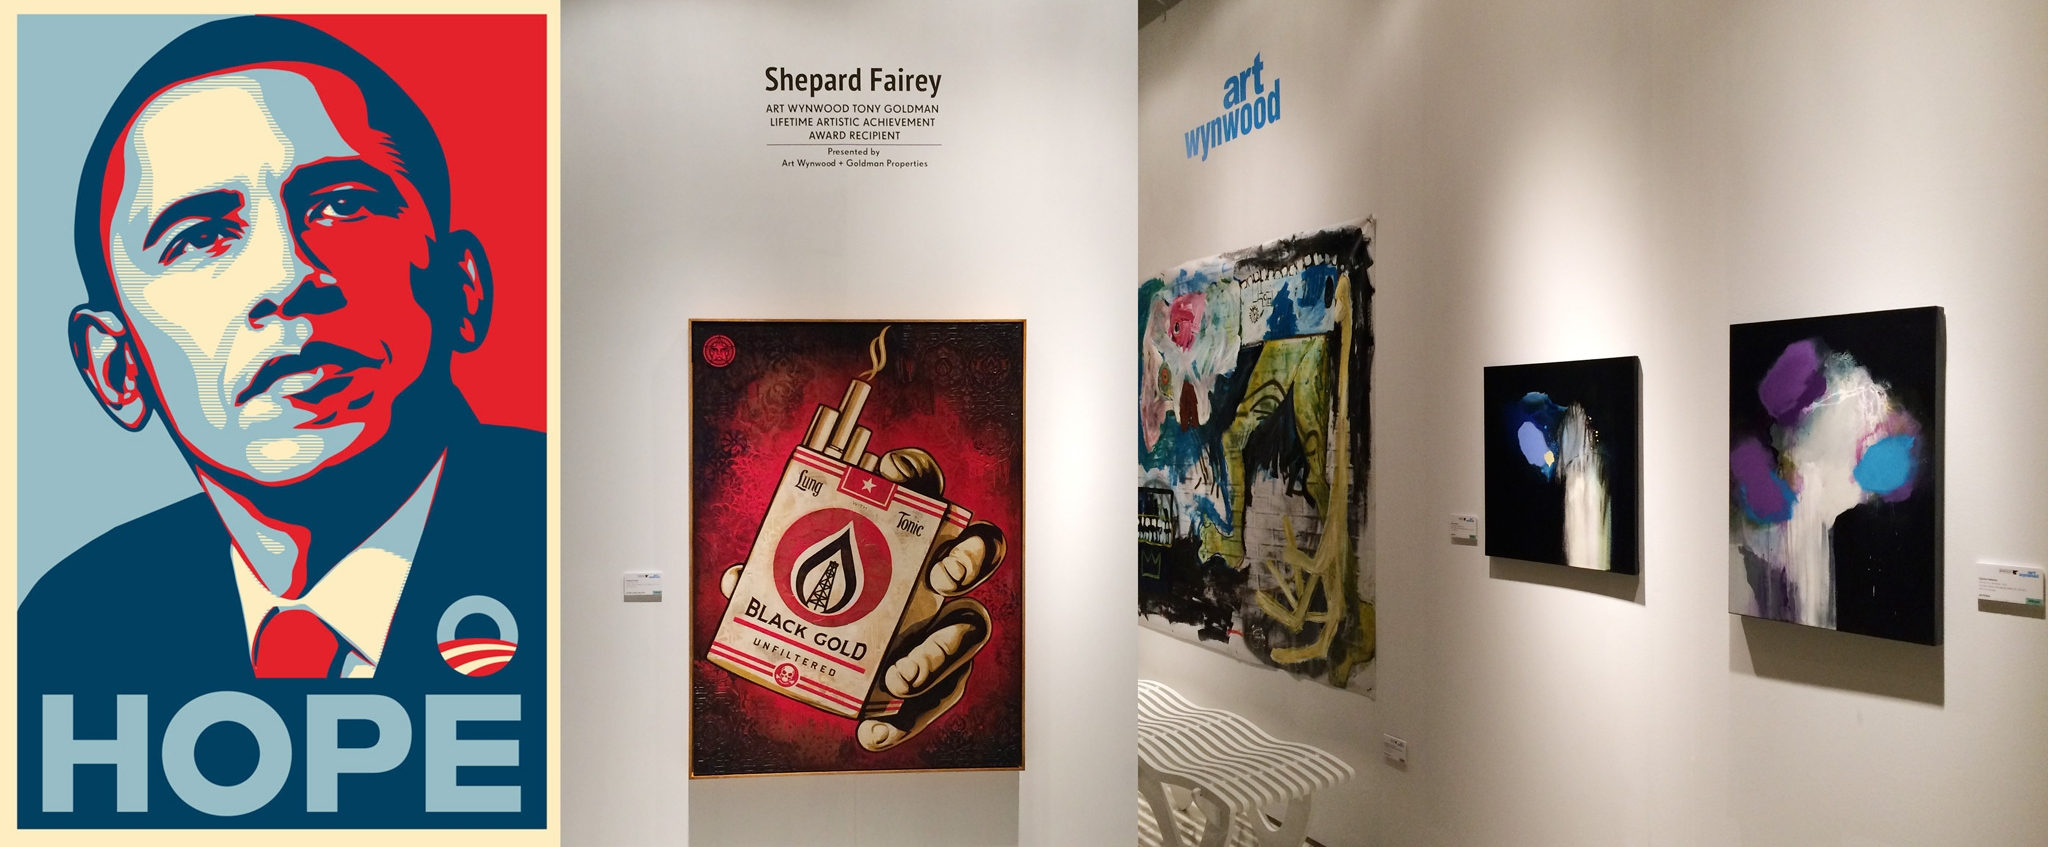 In good company with Shephard Fairey (Obey Giant) & David Ramirez Gomez